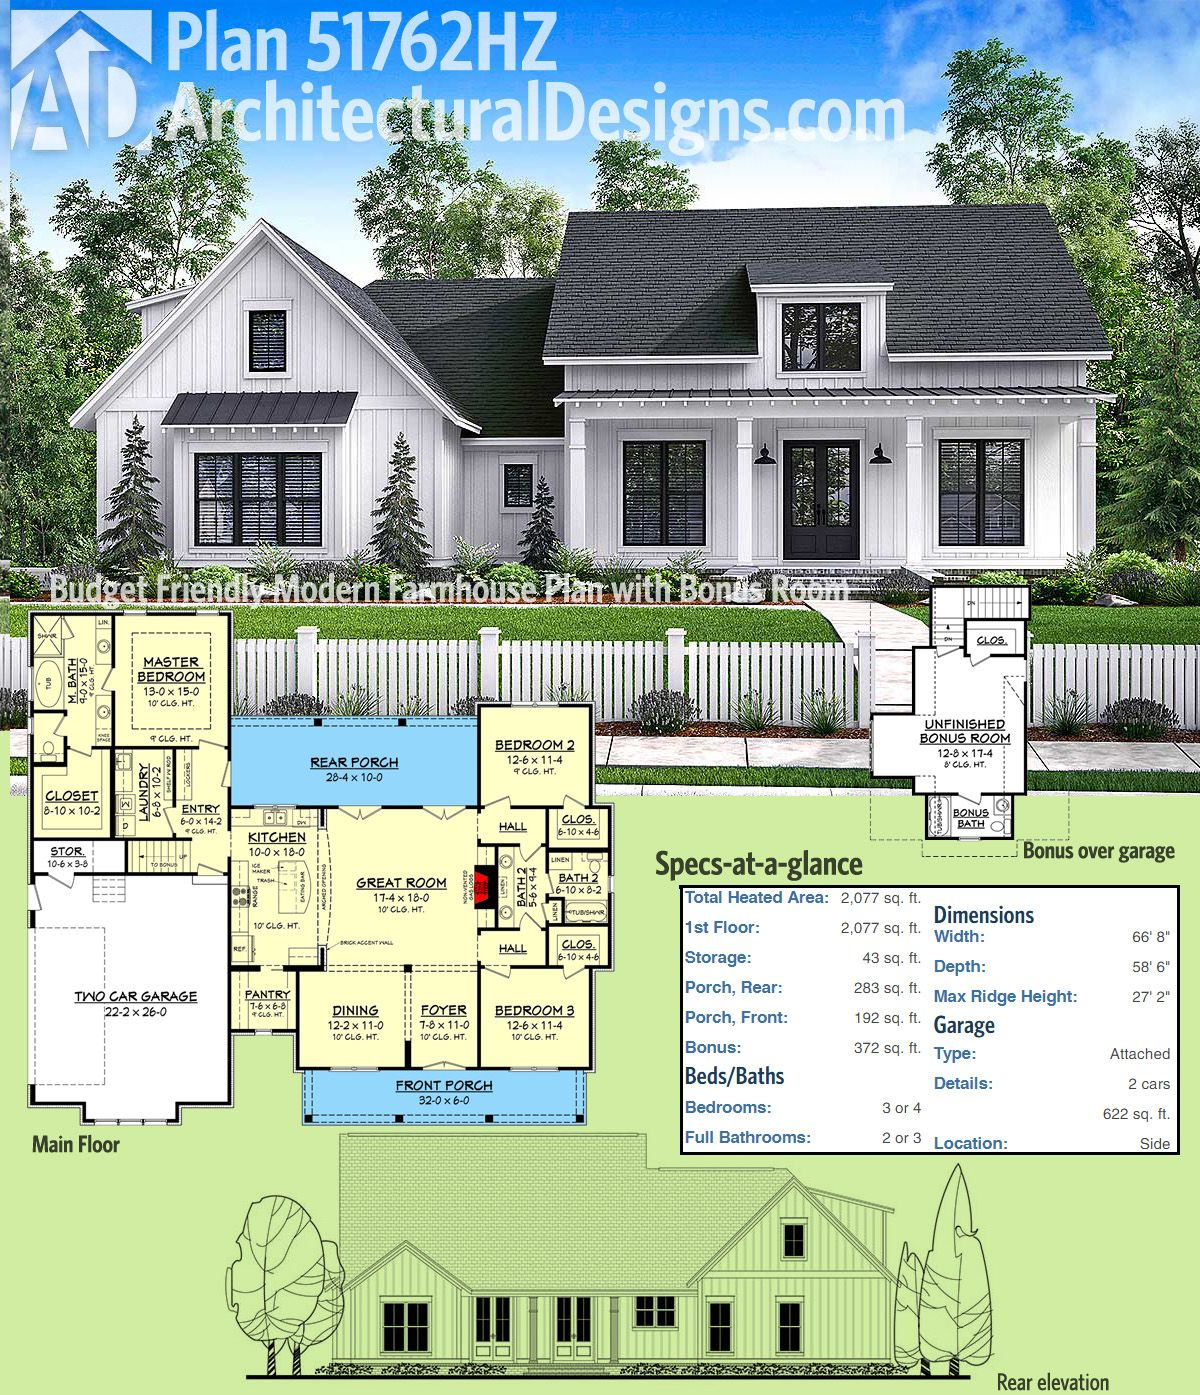 Best 25+ Modern farmhouse plans ideas on Pinterest | Farmhouse plans, Modern  farmhouse floor plans and Farmhouse house plans